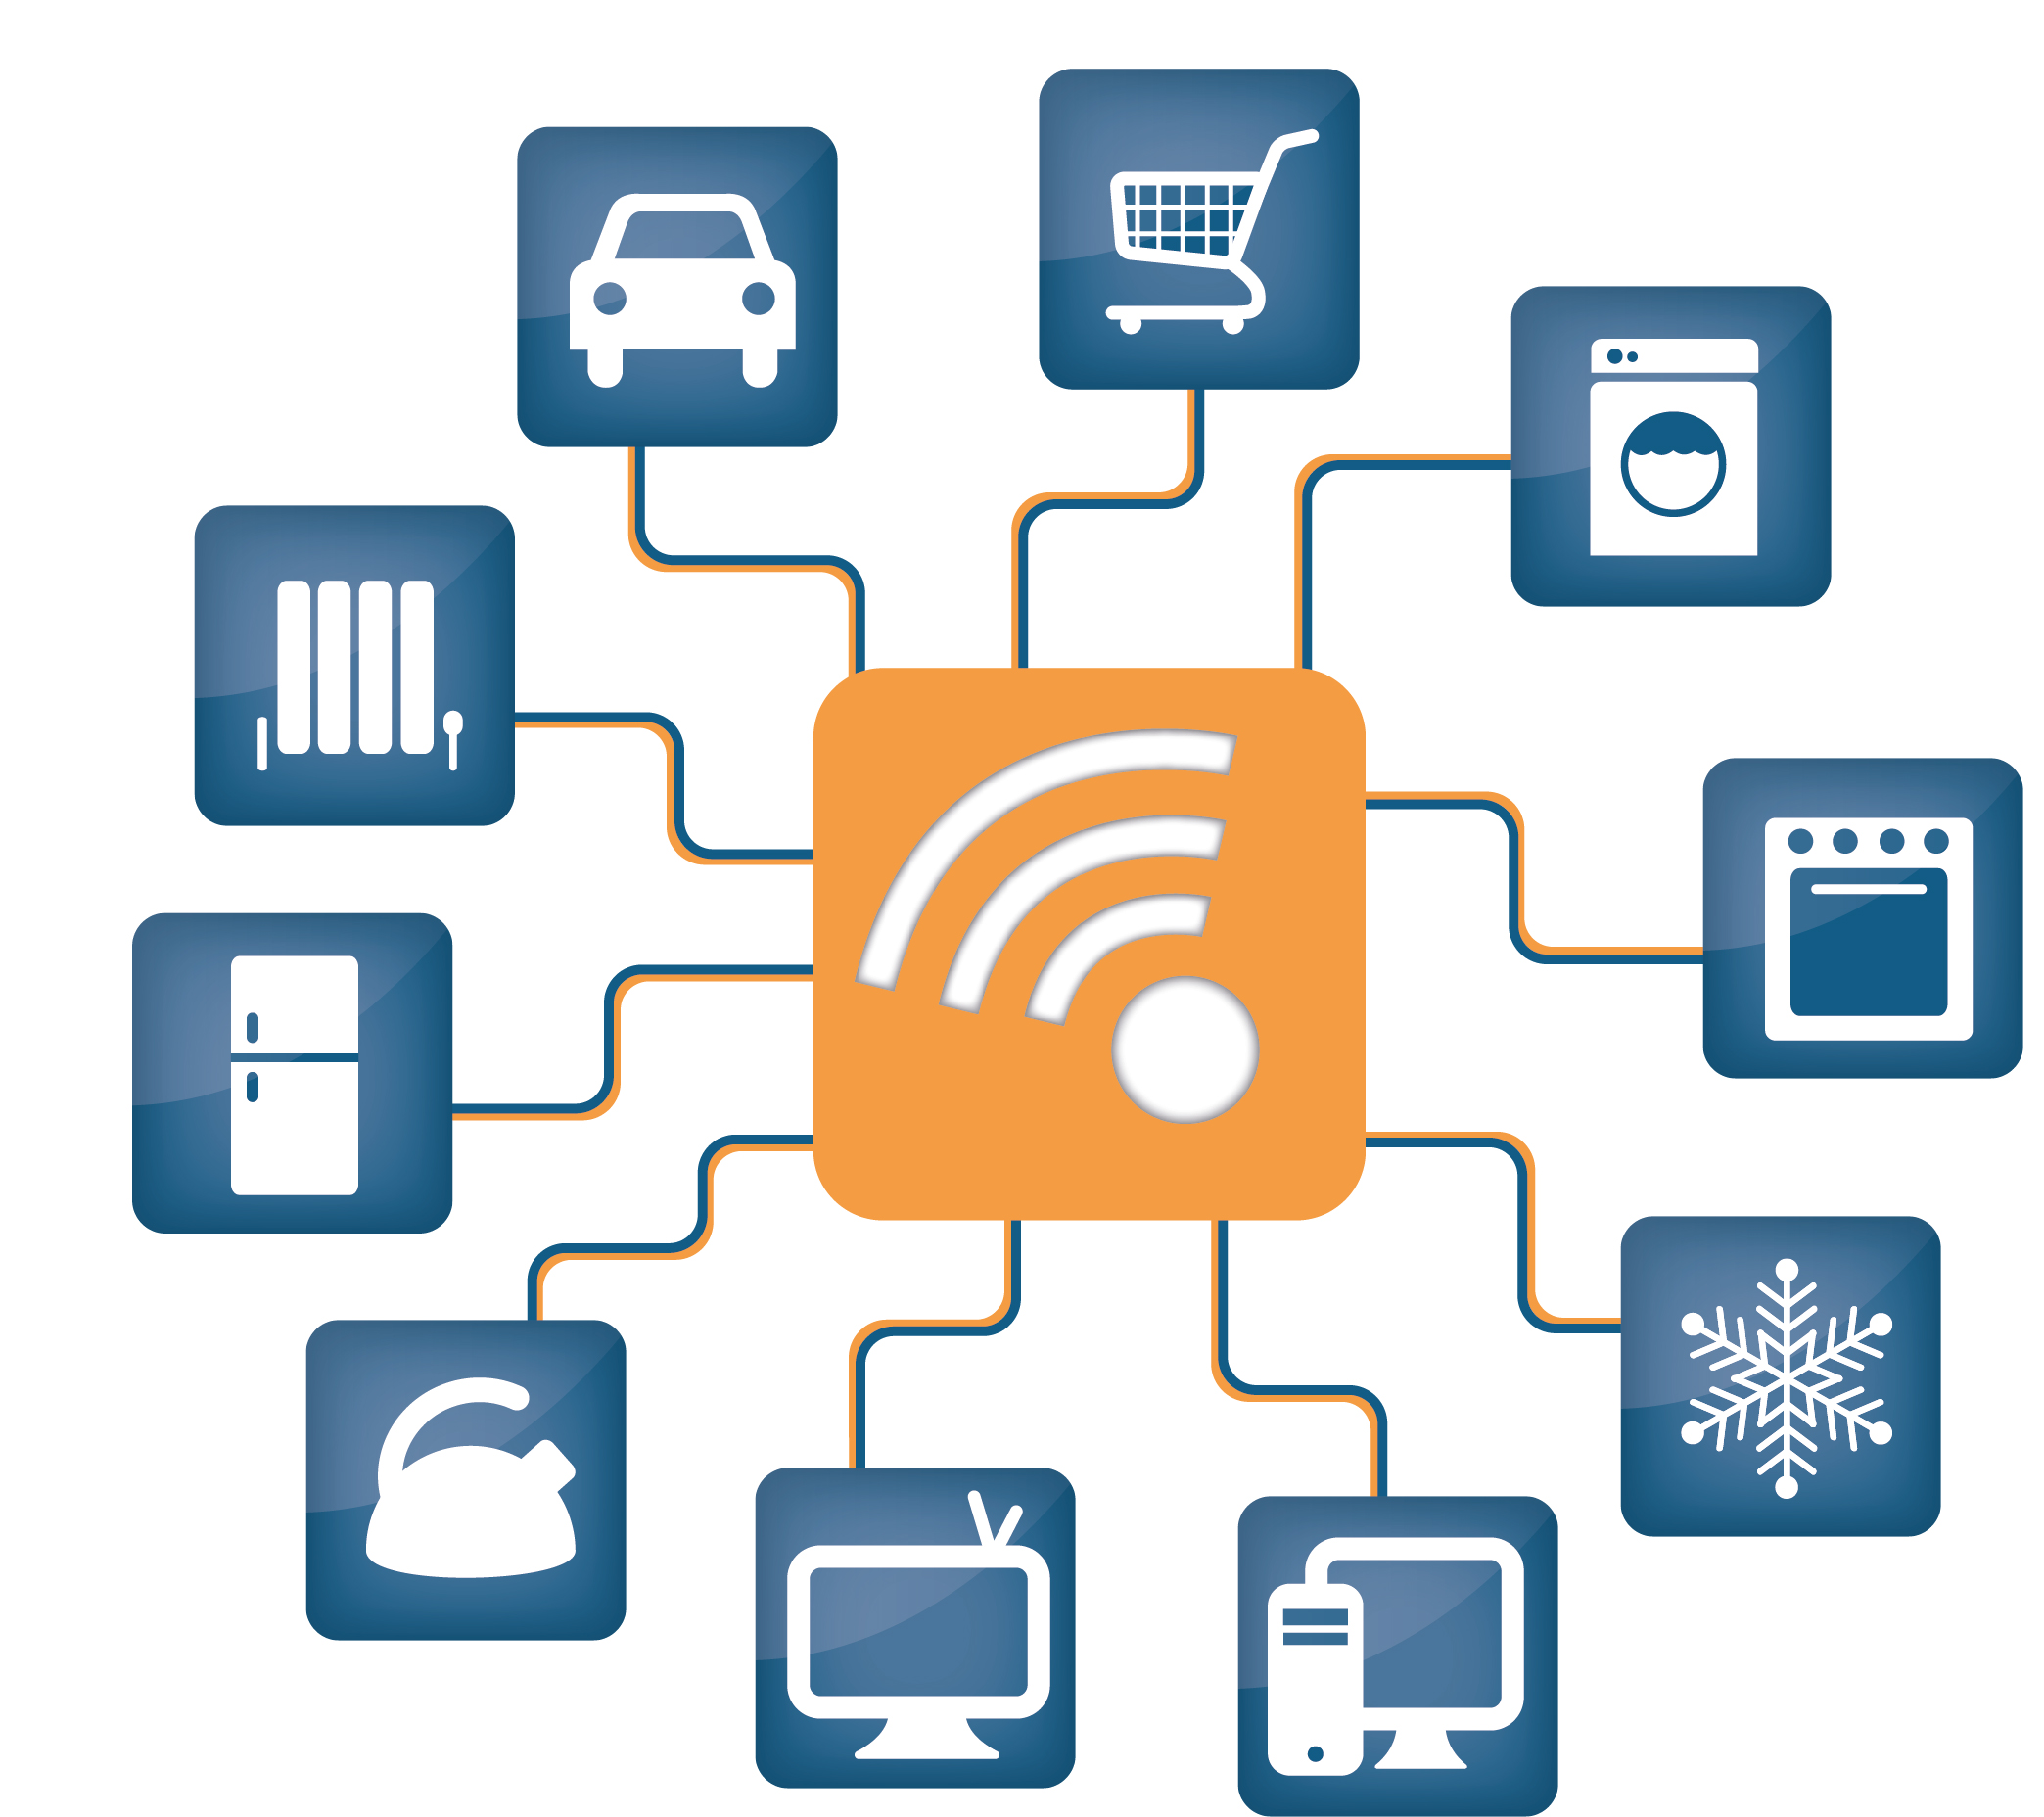 15 Iot Device Icon Images